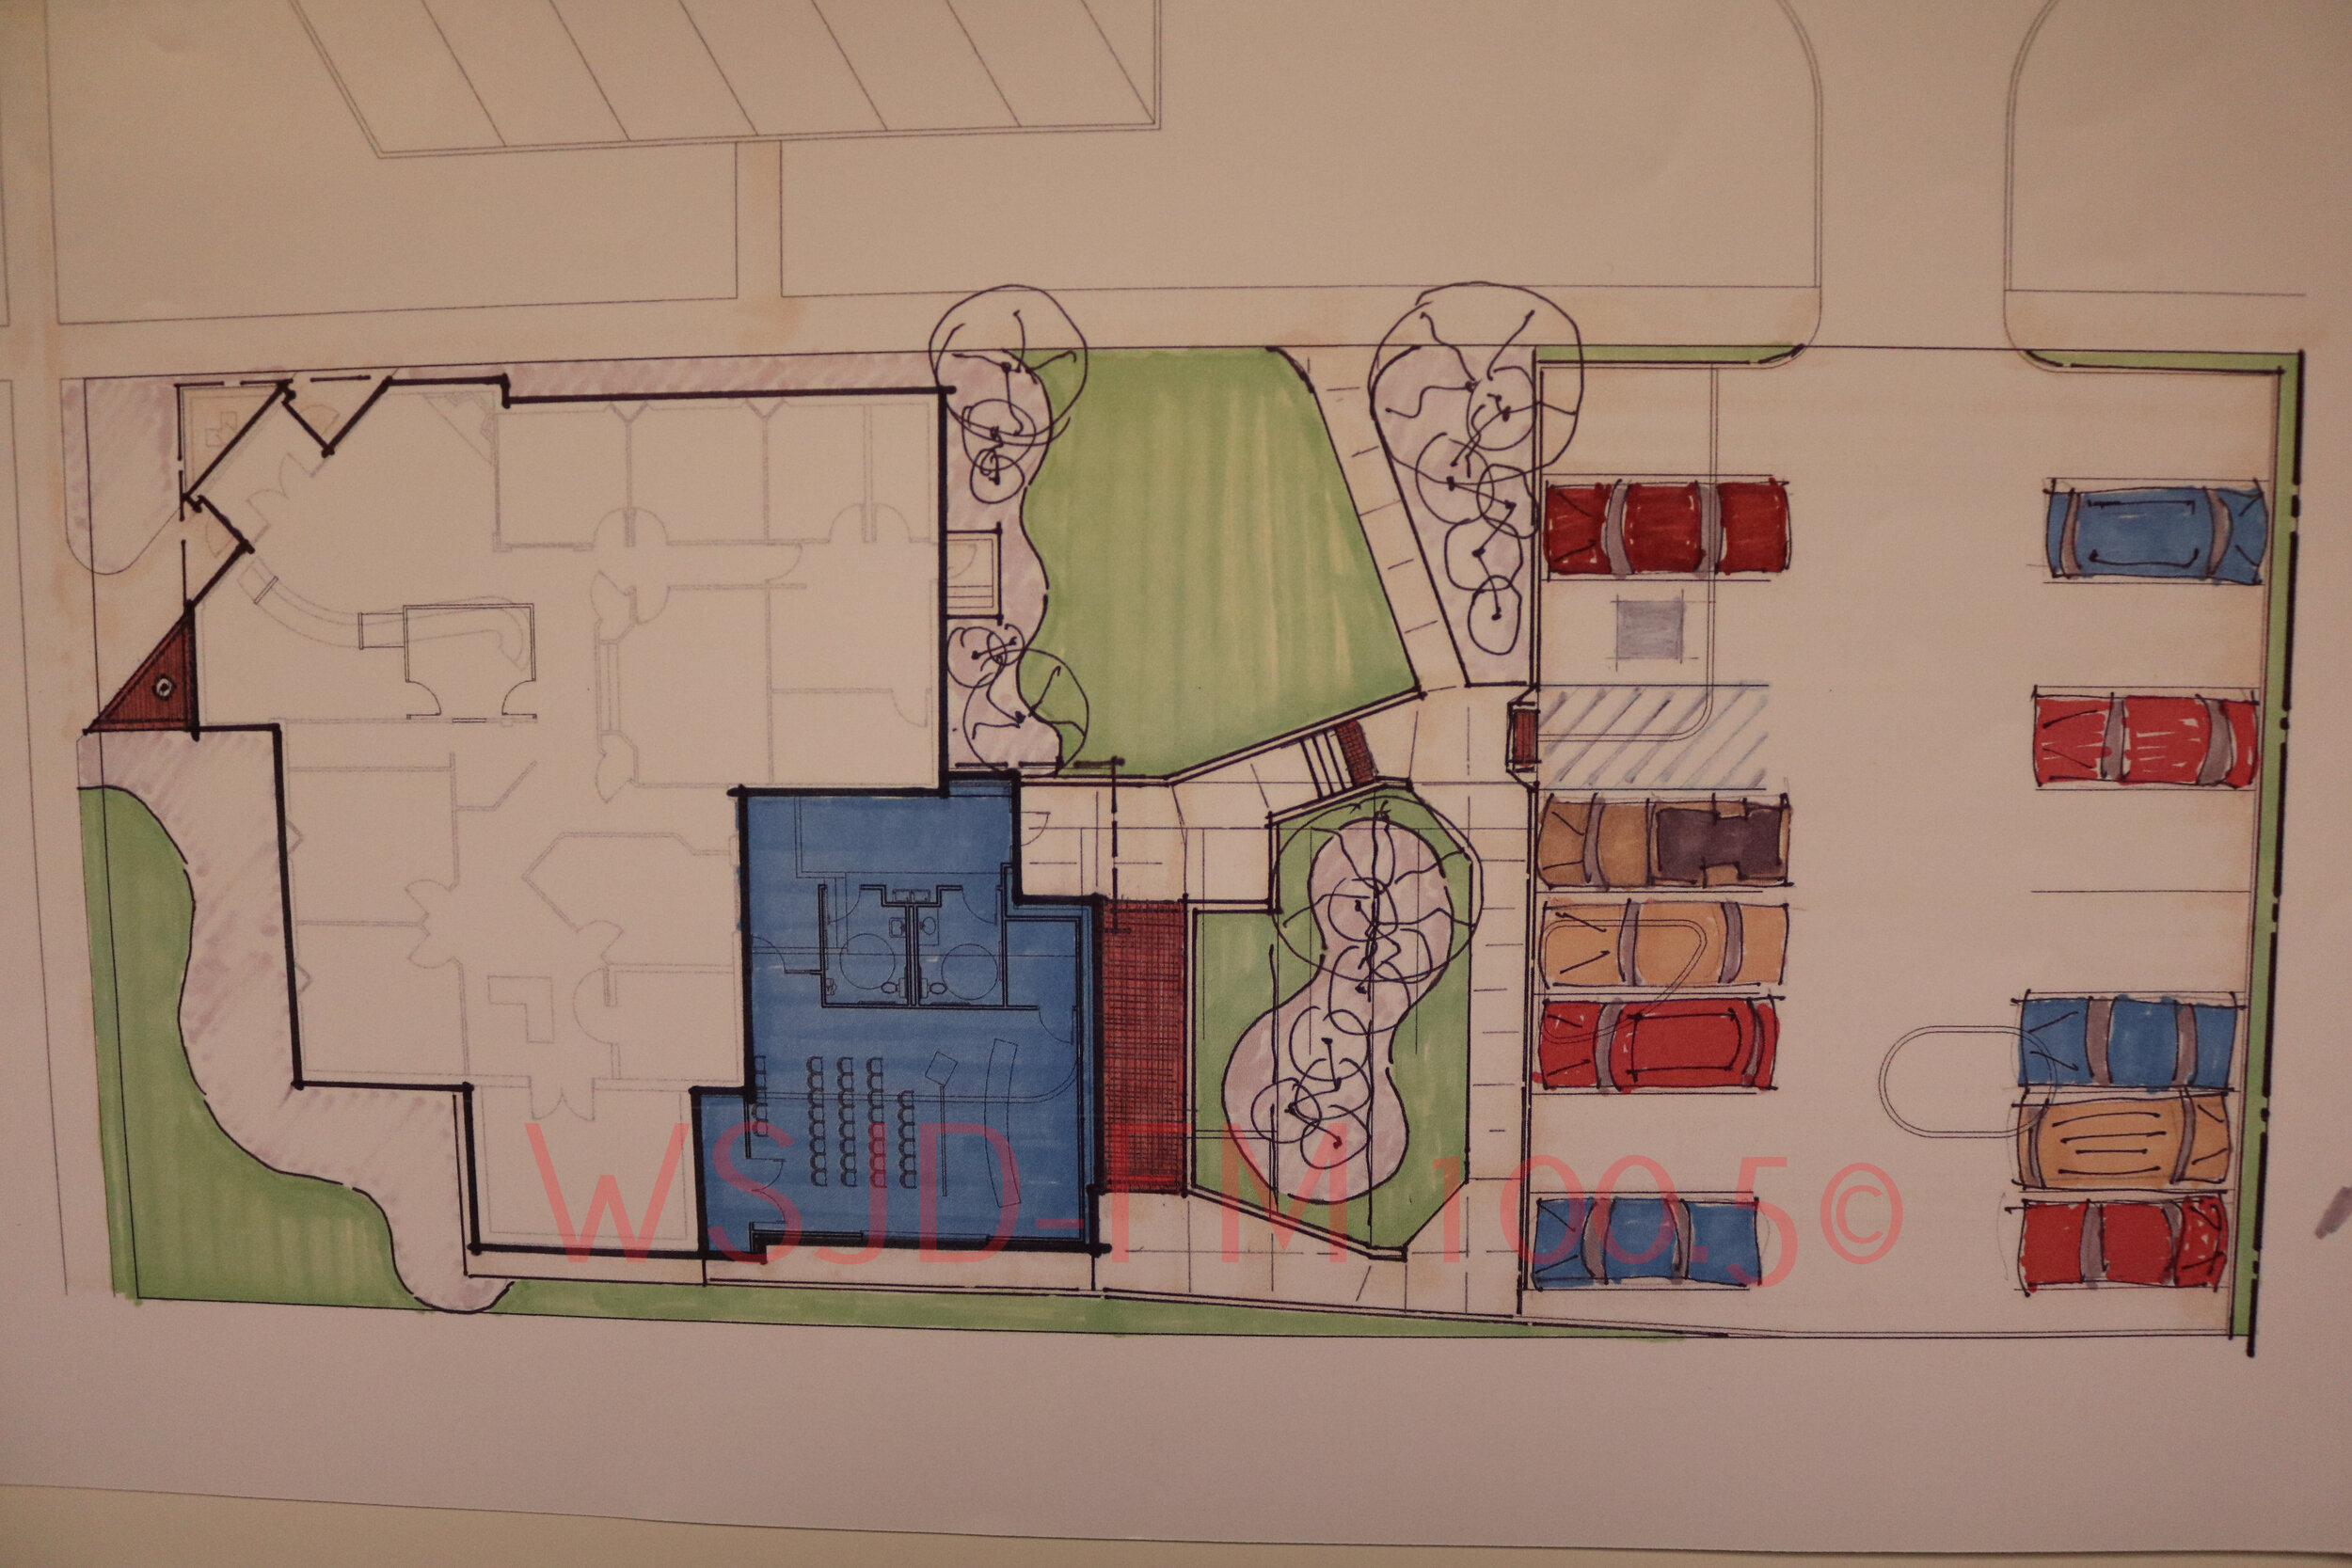 Design plans for the expansion at the new City Hall location at 631 Market Street. The new building addition is shaded in blue.